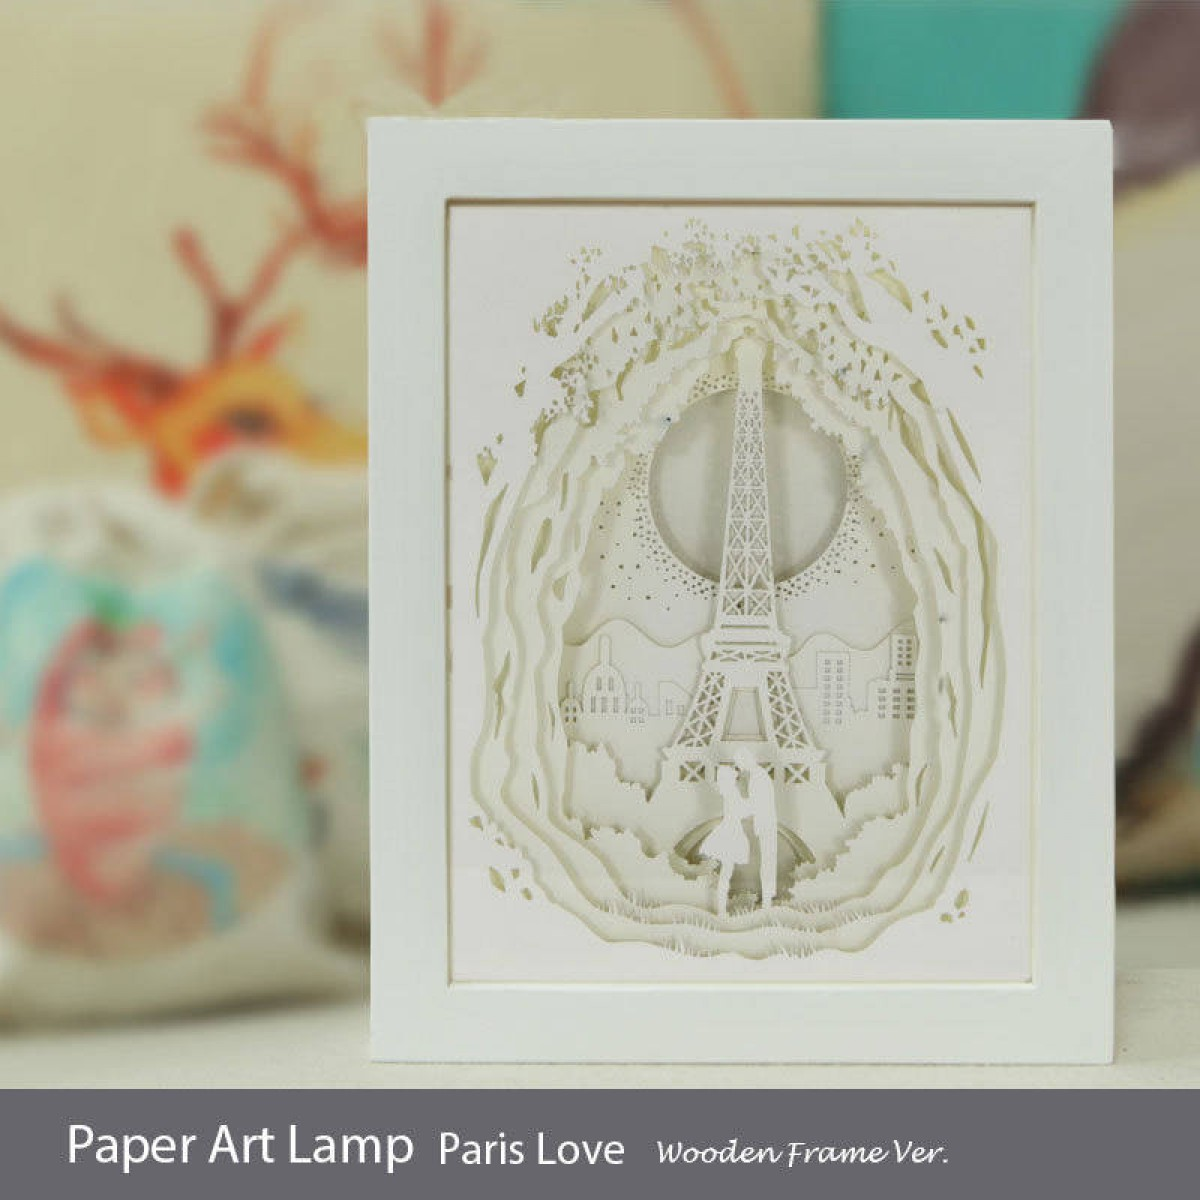 Papercut Light Box Paris Love Wooden Frame